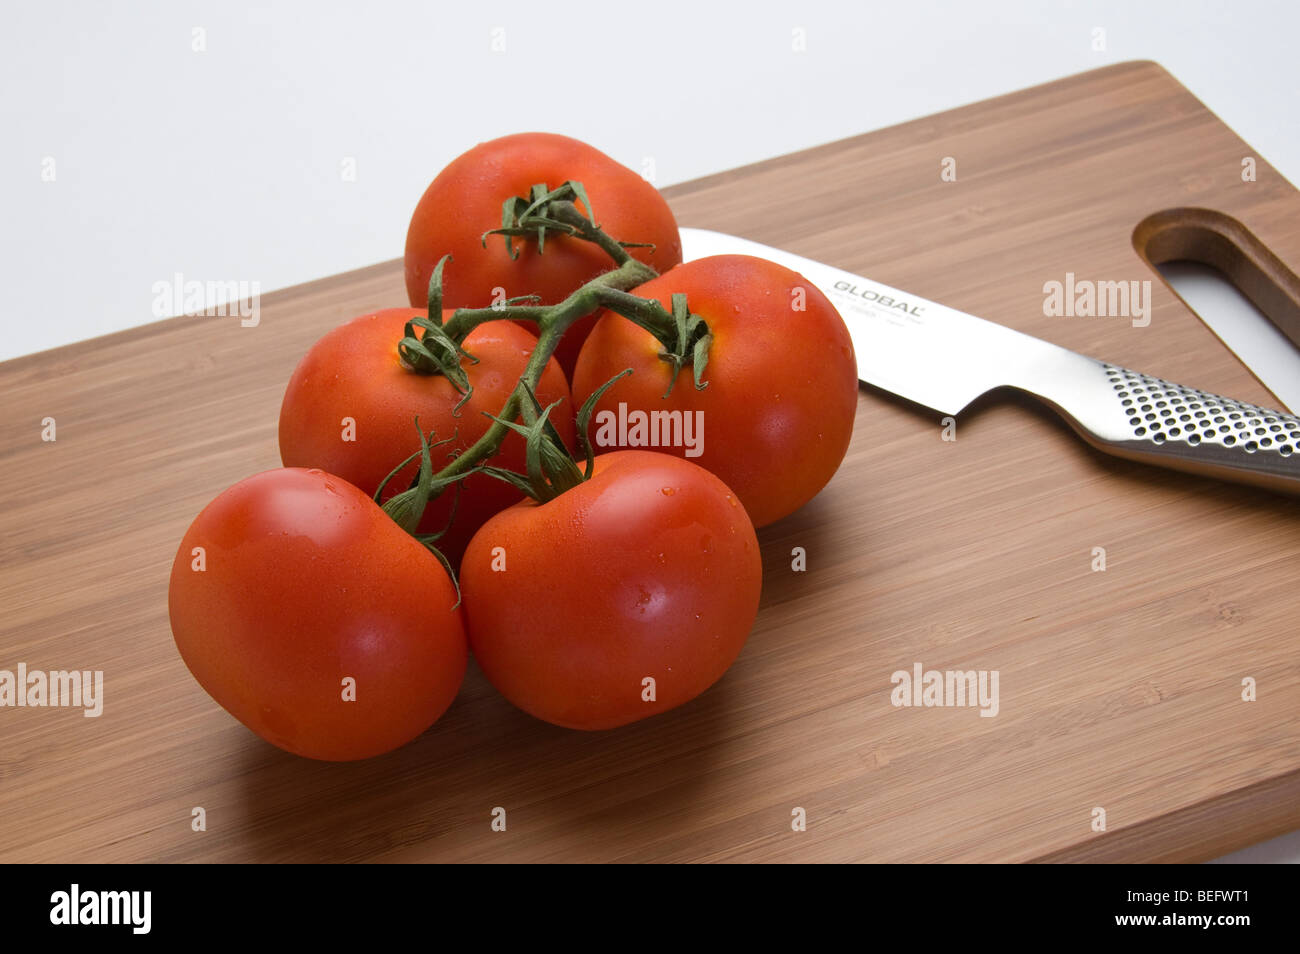 Organic vine tomatoes on cutting board. - Stock Image